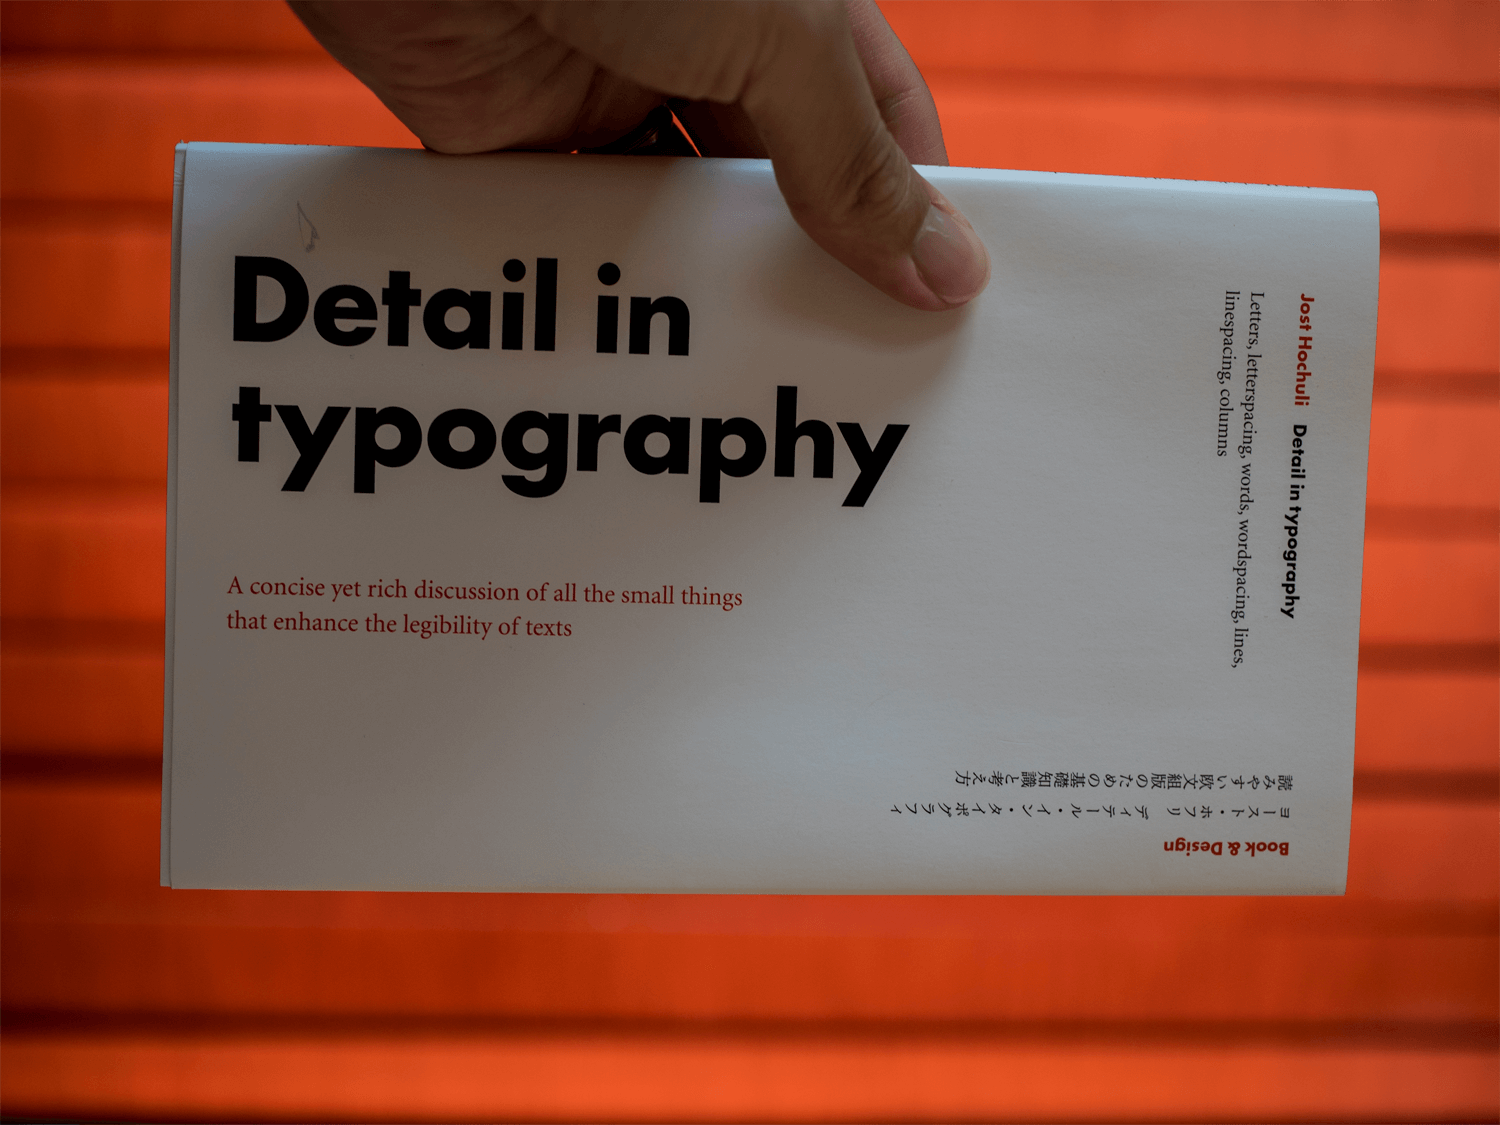 【書評】Detail in typography